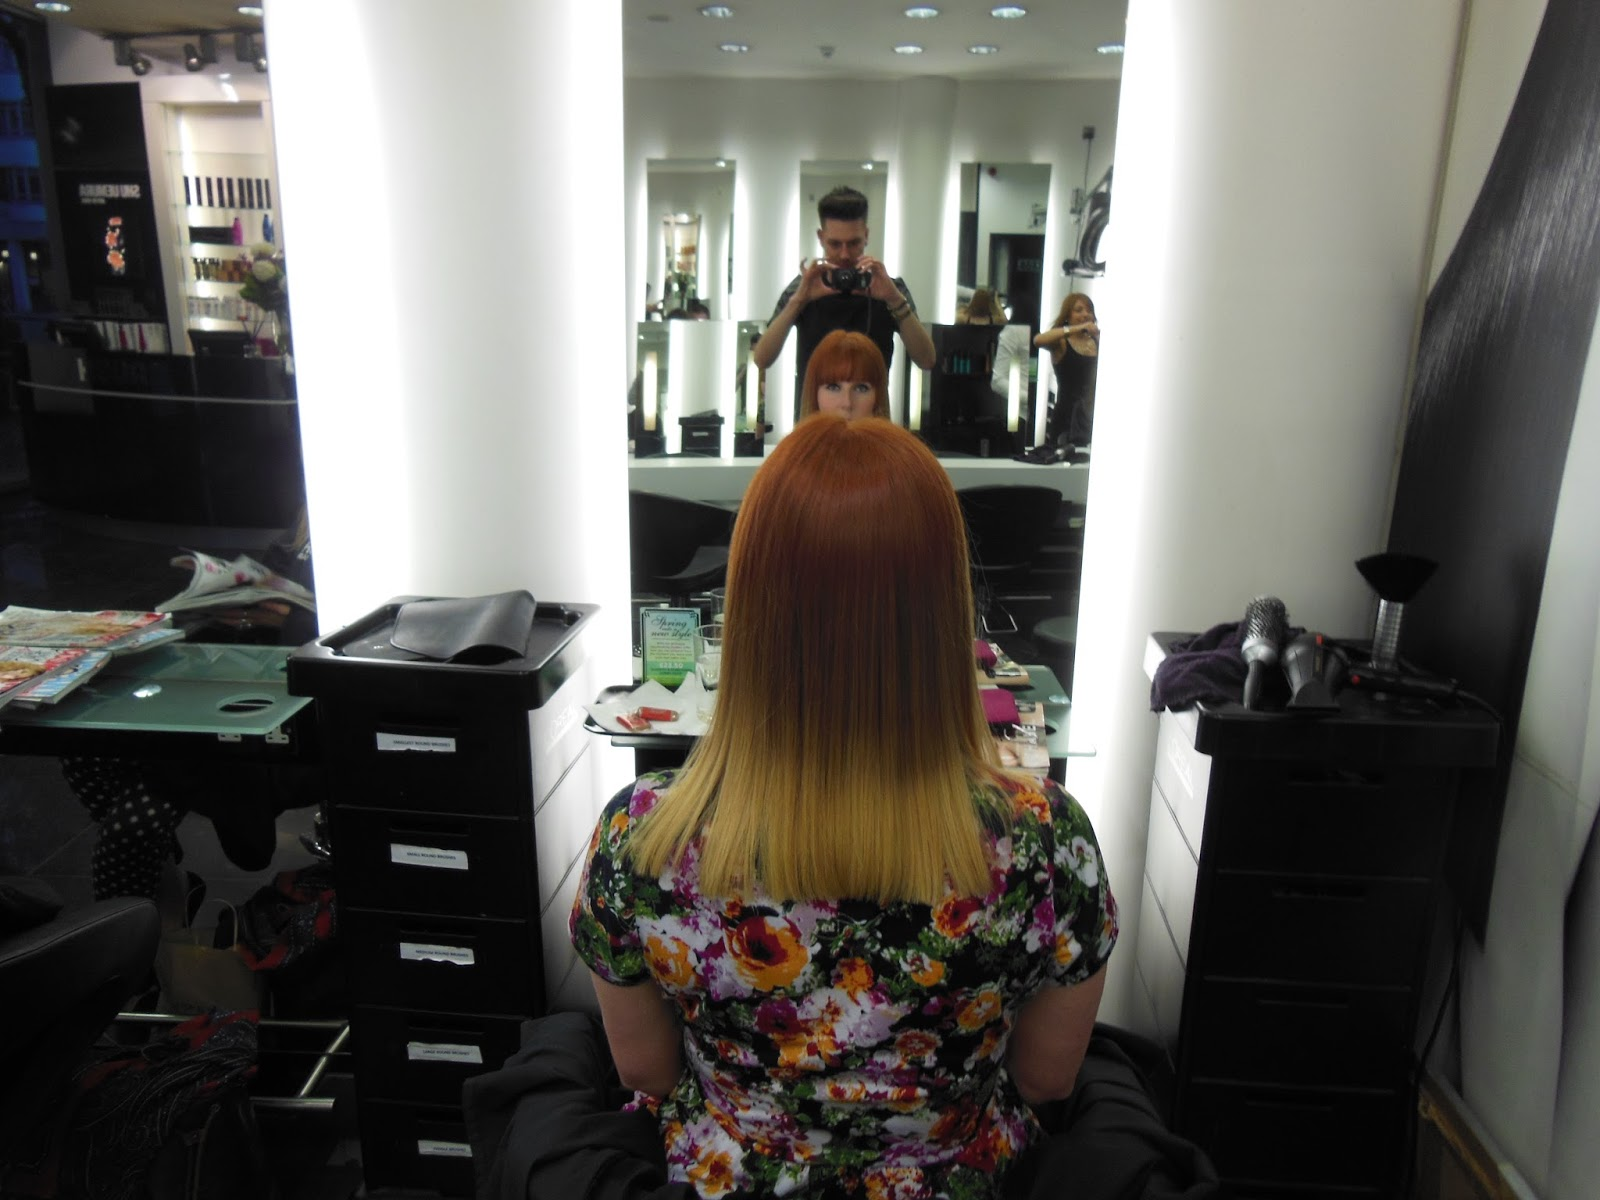 My finished hair cut at rush tottenham court road